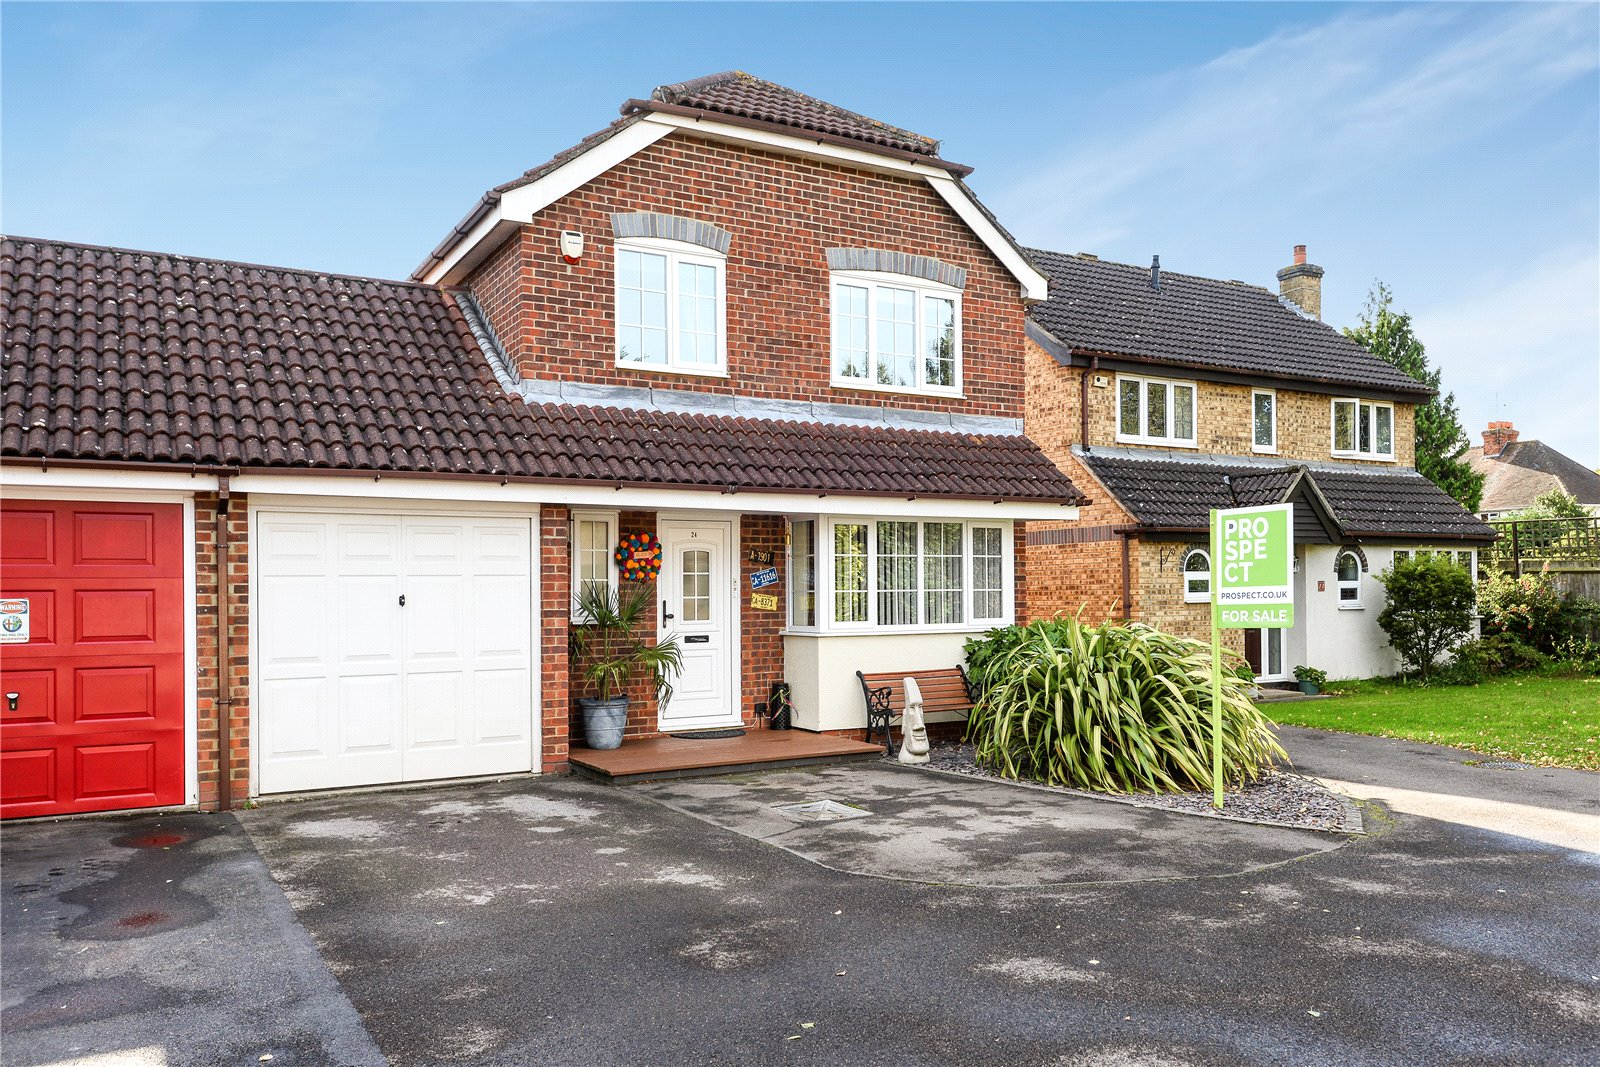 4 Bedrooms Detached House for sale in Turnstone Close, Winnersh, Wokingham, Berkshire, RG41